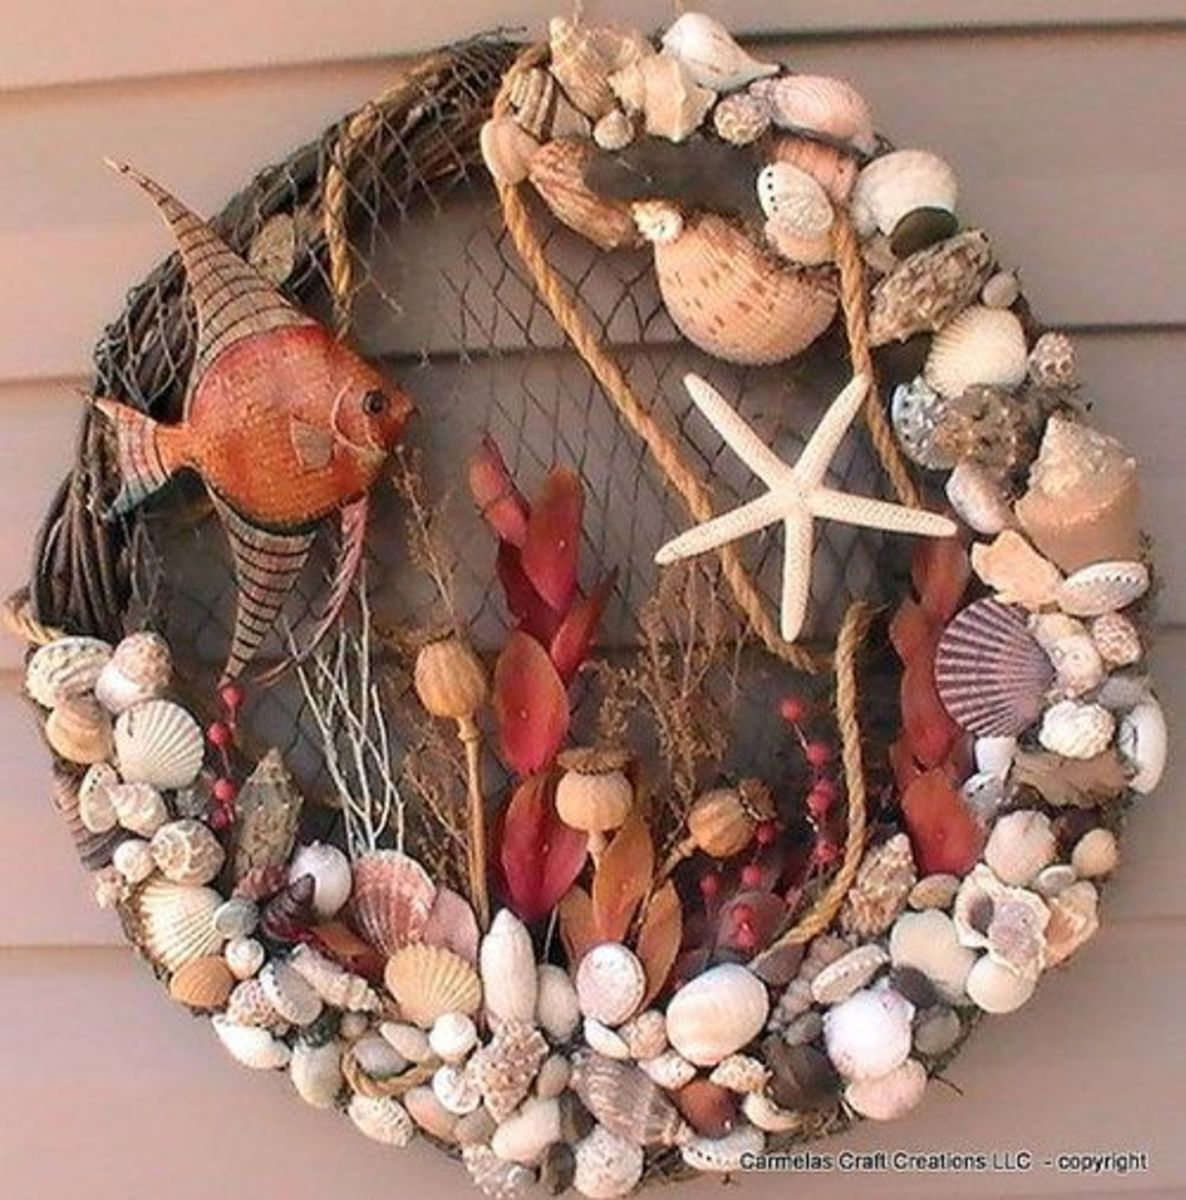 Adding extra decor to your shell wreath adds interest